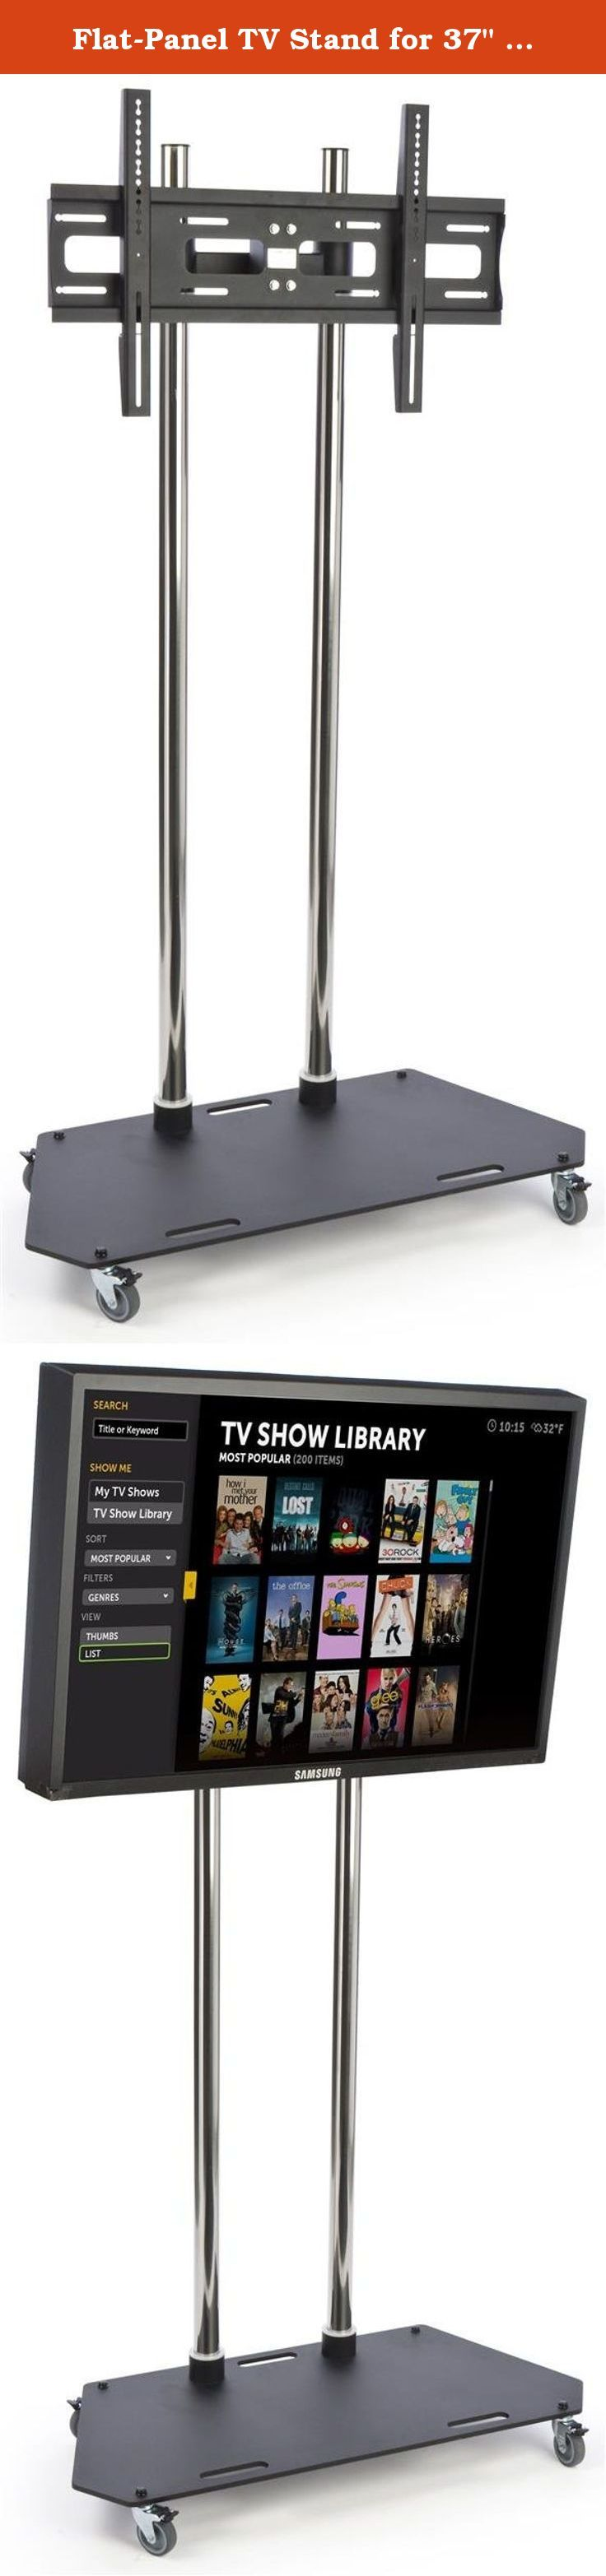 """Flat-Panel TV Stand for 37"""" to 60"""" Monitors, Height Adjustable Tilting Bracket, Locking Casters, Steel (Black). Designed to hold larger flat-panel TV screens, this stand can accommodate monitors 37"""" to 60"""" inches wide and up to 176-lbs. Constructed of chrome and black finish steel, this TV mount features built-in casters that allow Plasma or LCD TVs to be easily moved from one location to another. The casters also lock to provide stability when in use. This TV rack is VESA (Video…"""